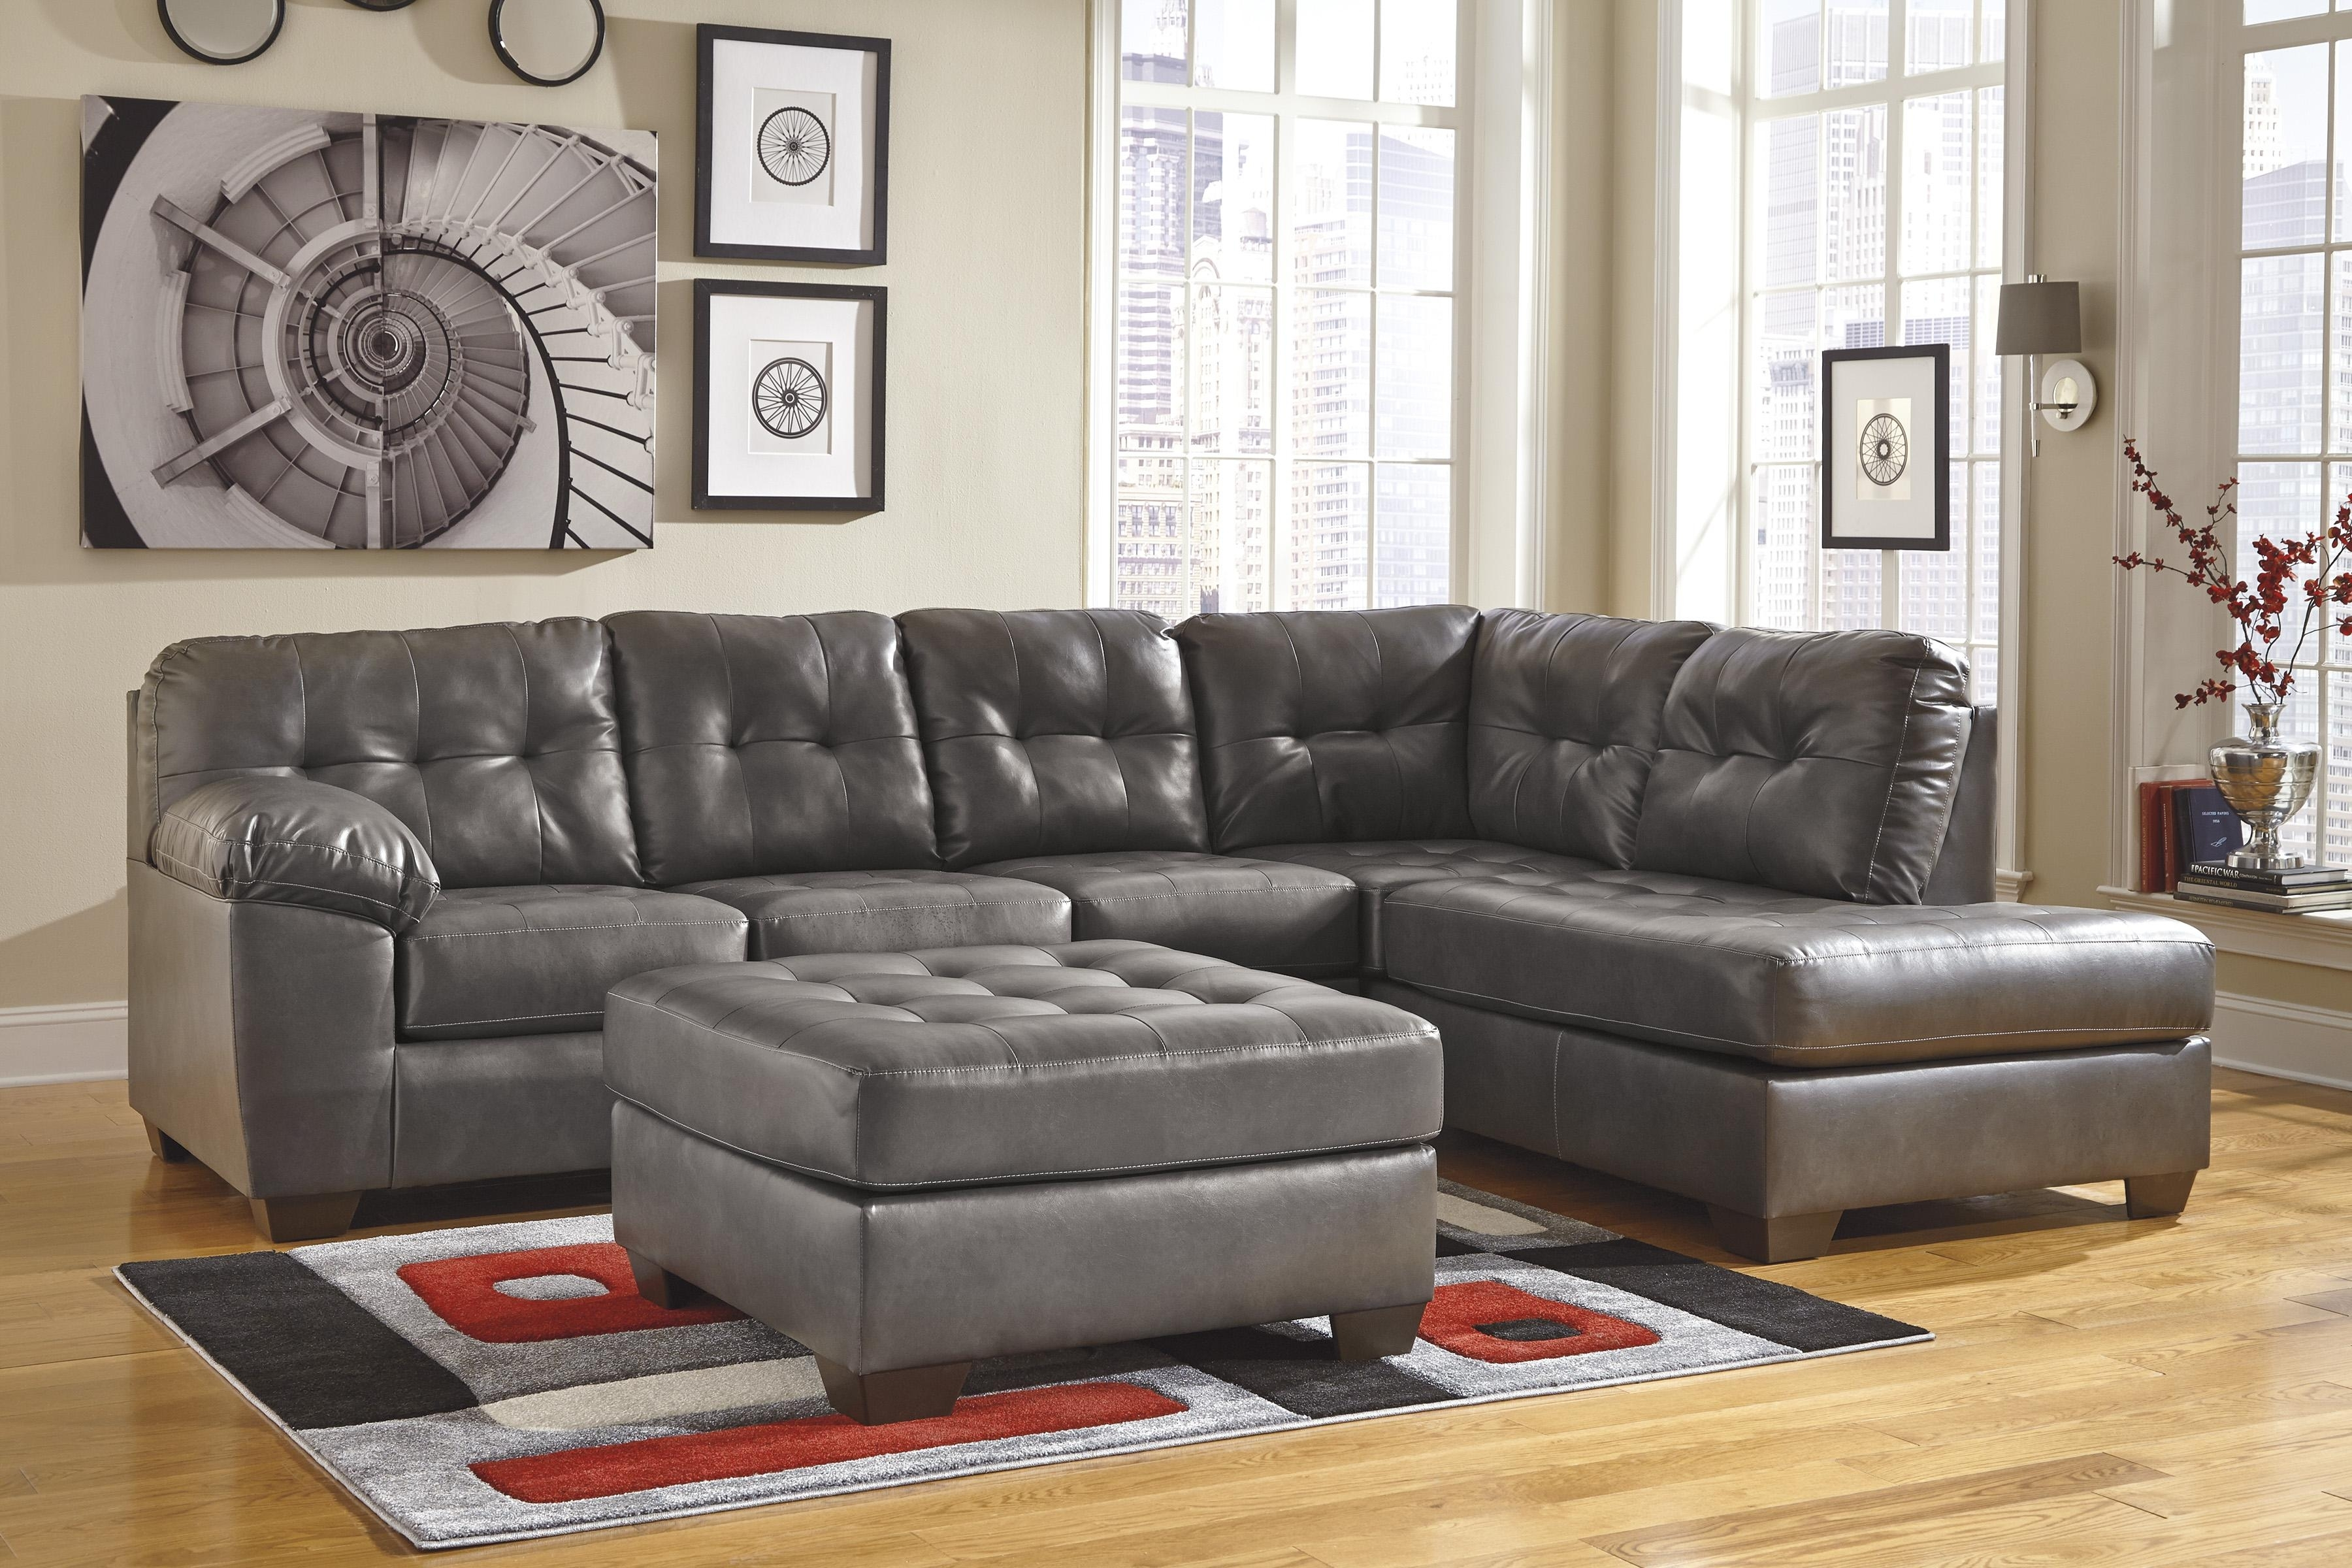 Living Room: Elegant Ashley Leather Sectional Sofa For Comfortable for Lucy Grey 2 Piece Sleeper Sectionals With Laf Chaise (Image 14 of 30)